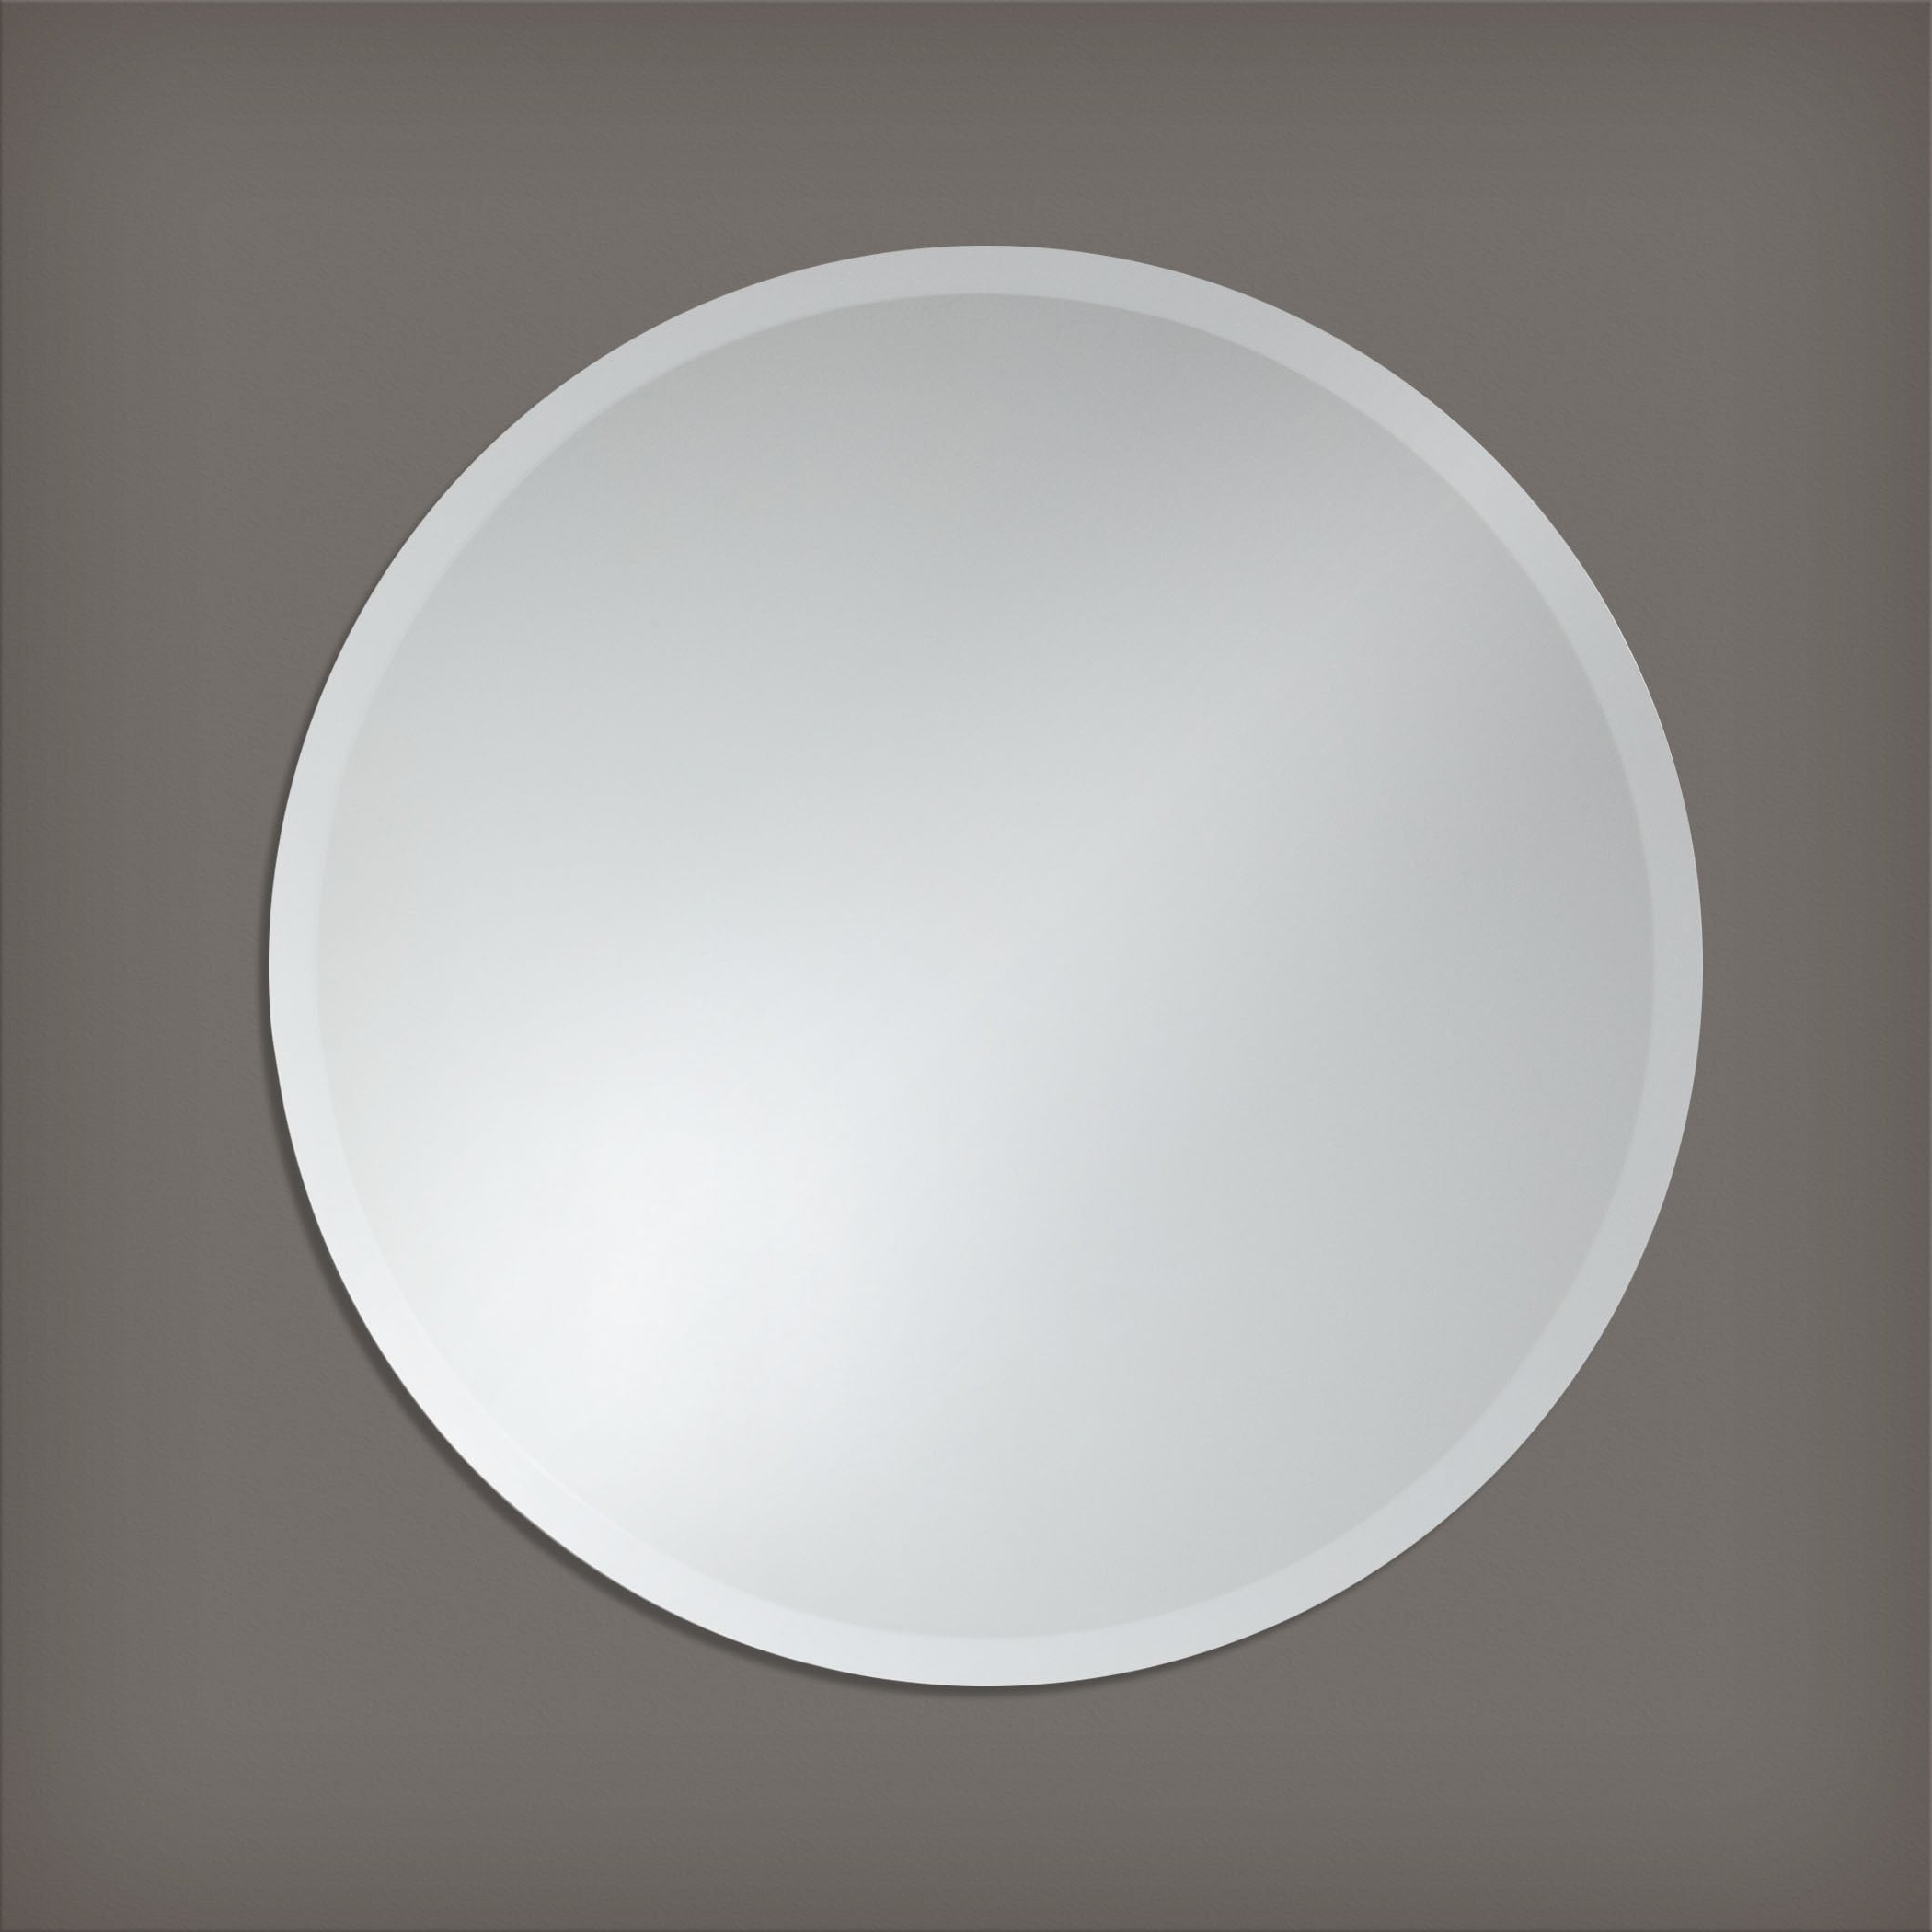 Most Recent Frameless Round Wall Mirrorthe Better Bevel – Silver Throughout Round Beveled Wall Mirrors (View 7 of 20)